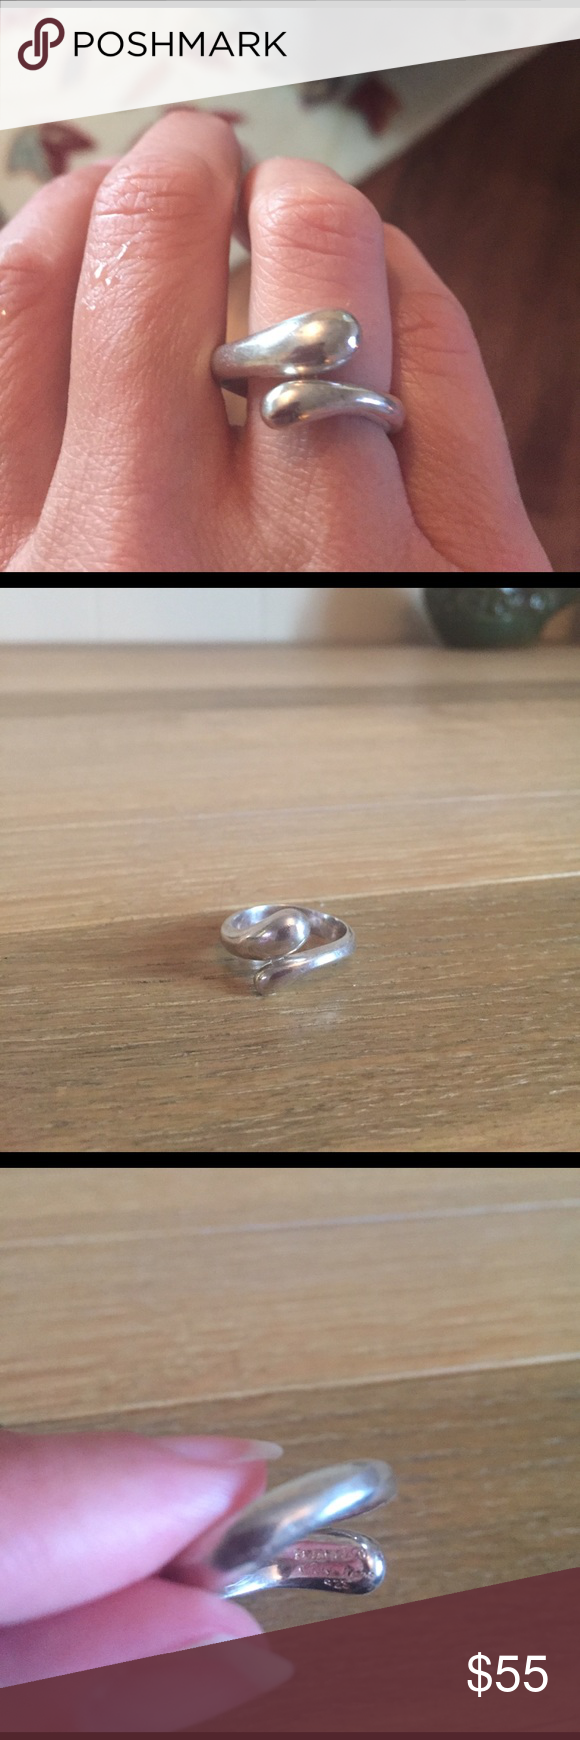 Tiffany & co teardrop ring Preowned. Light scuffing and some tarnish. Approx size 5 but slightly adjustable. From the Elsa Peretti collection. Marked Tiffany & Co .925. Does not come with pouch. Price firm Tiffany & Co. Jewelry Rings